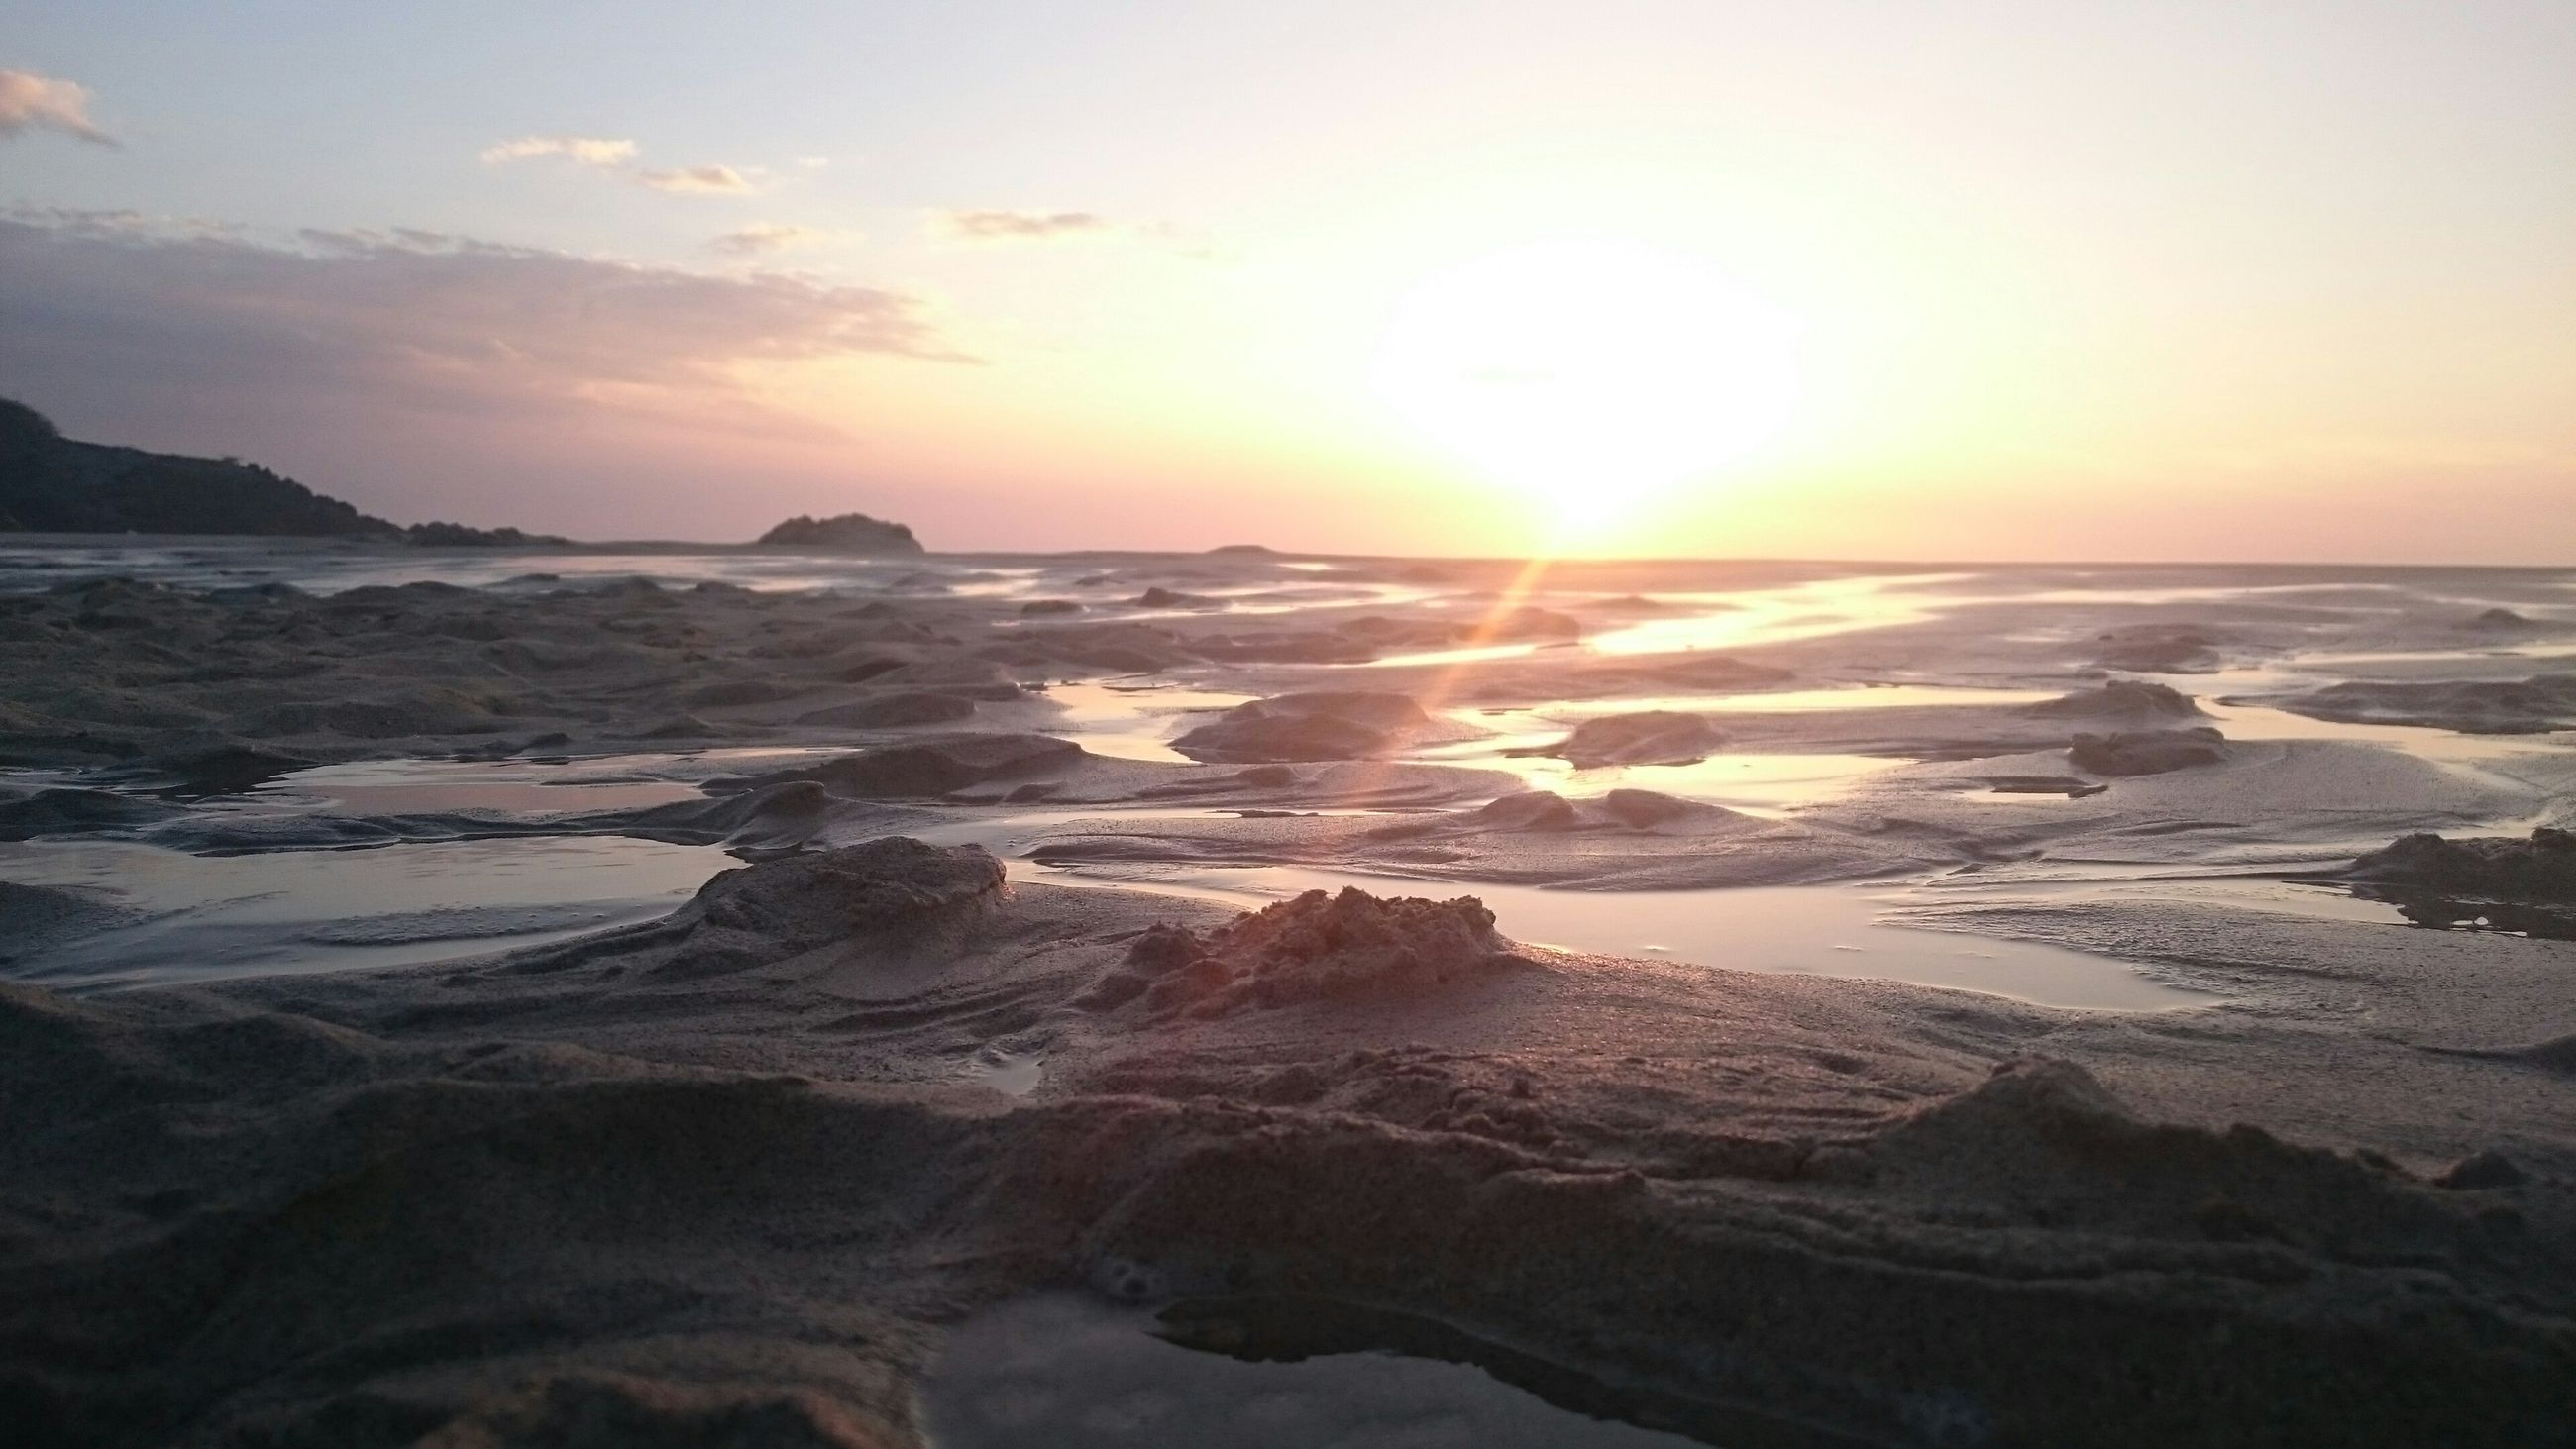 sunset, sea, scenics, water, tranquil scene, beauty in nature, tranquility, beach, sun, horizon over water, nature, sky, idyllic, orange color, shore, rock - object, sunlight, wave, reflection, remote